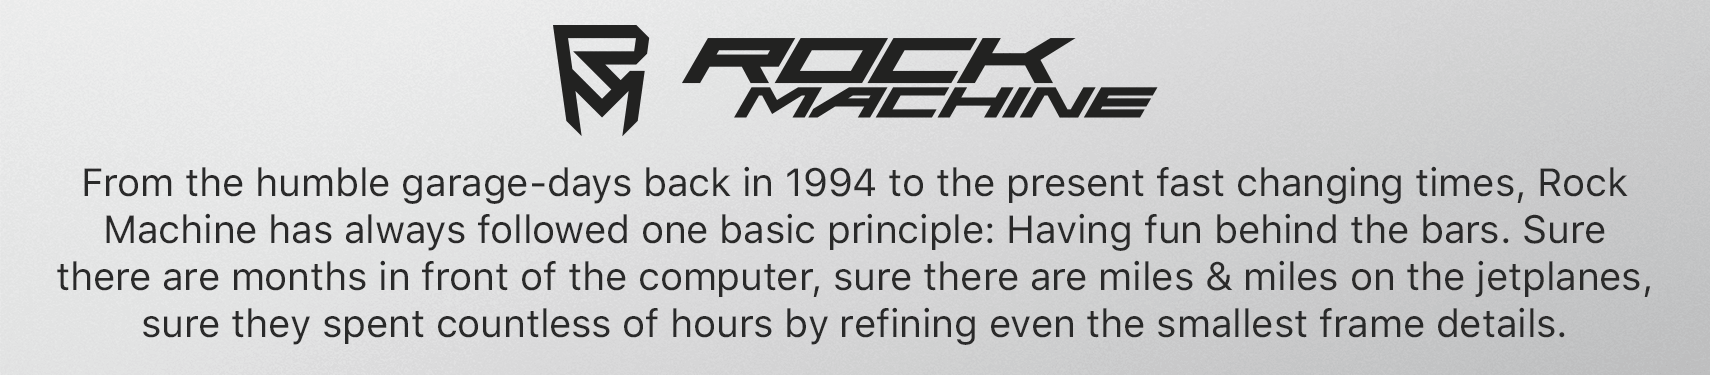 From the humble garage-days back in 1994 to the present fast changing times, Rock Machine has always followed one basic principle: Having fun behind the bars. Sure there are months in front of the computer, sure there are miles & miles on the jetplanes, sure they spent countless of hours by refining even the smallest frame details.